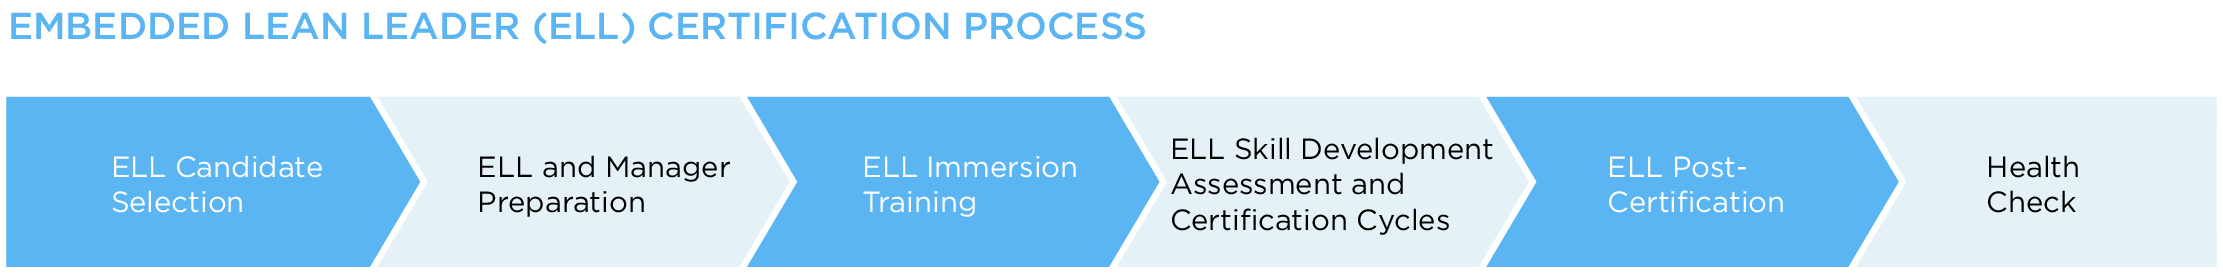 Embedded Lean Leader (ELL) Certification Process